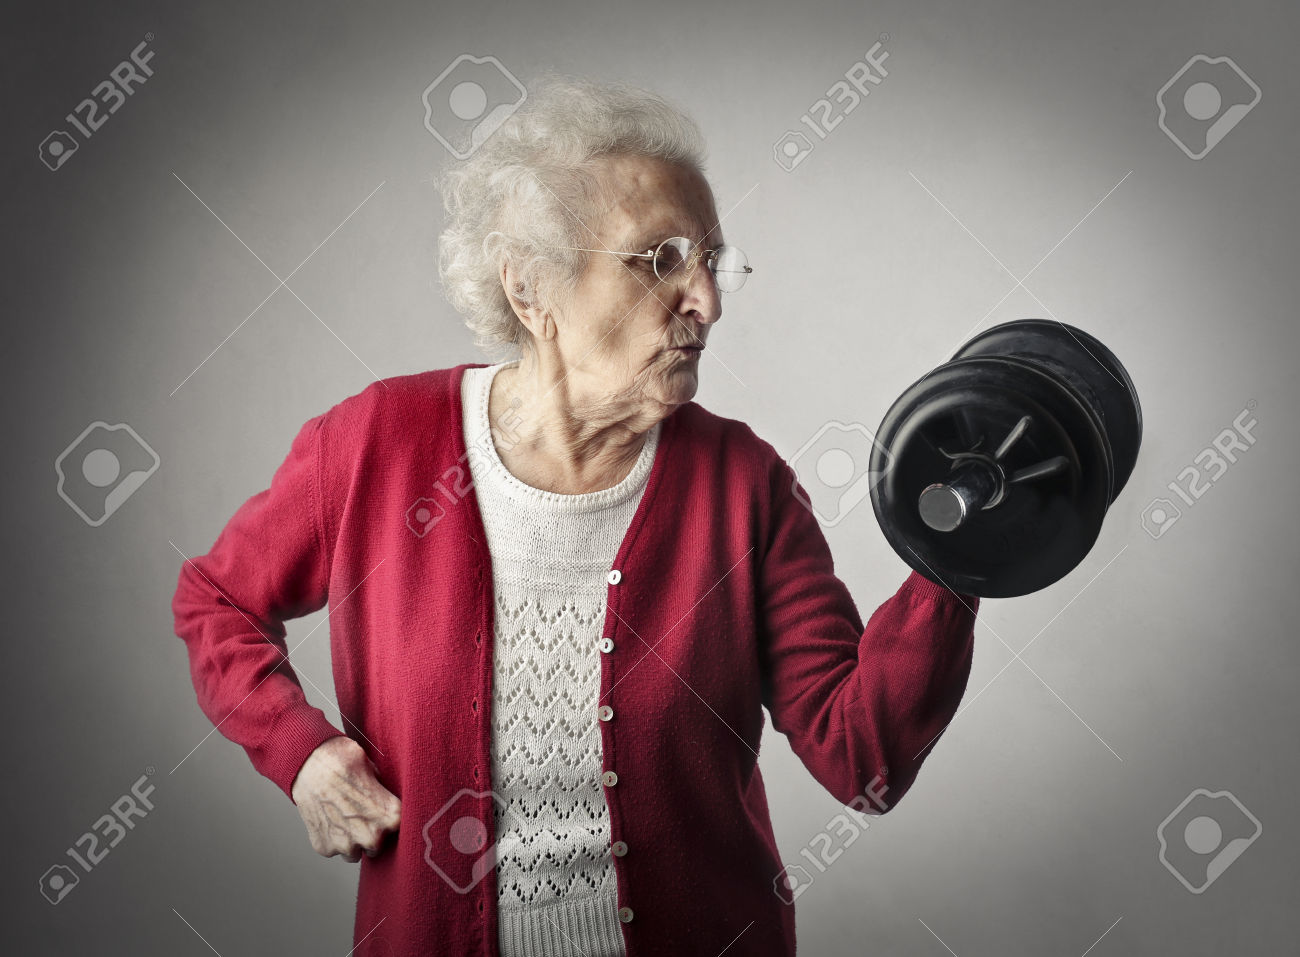 36234884-Elderly-woman-lifting-weights-Stock-Photo